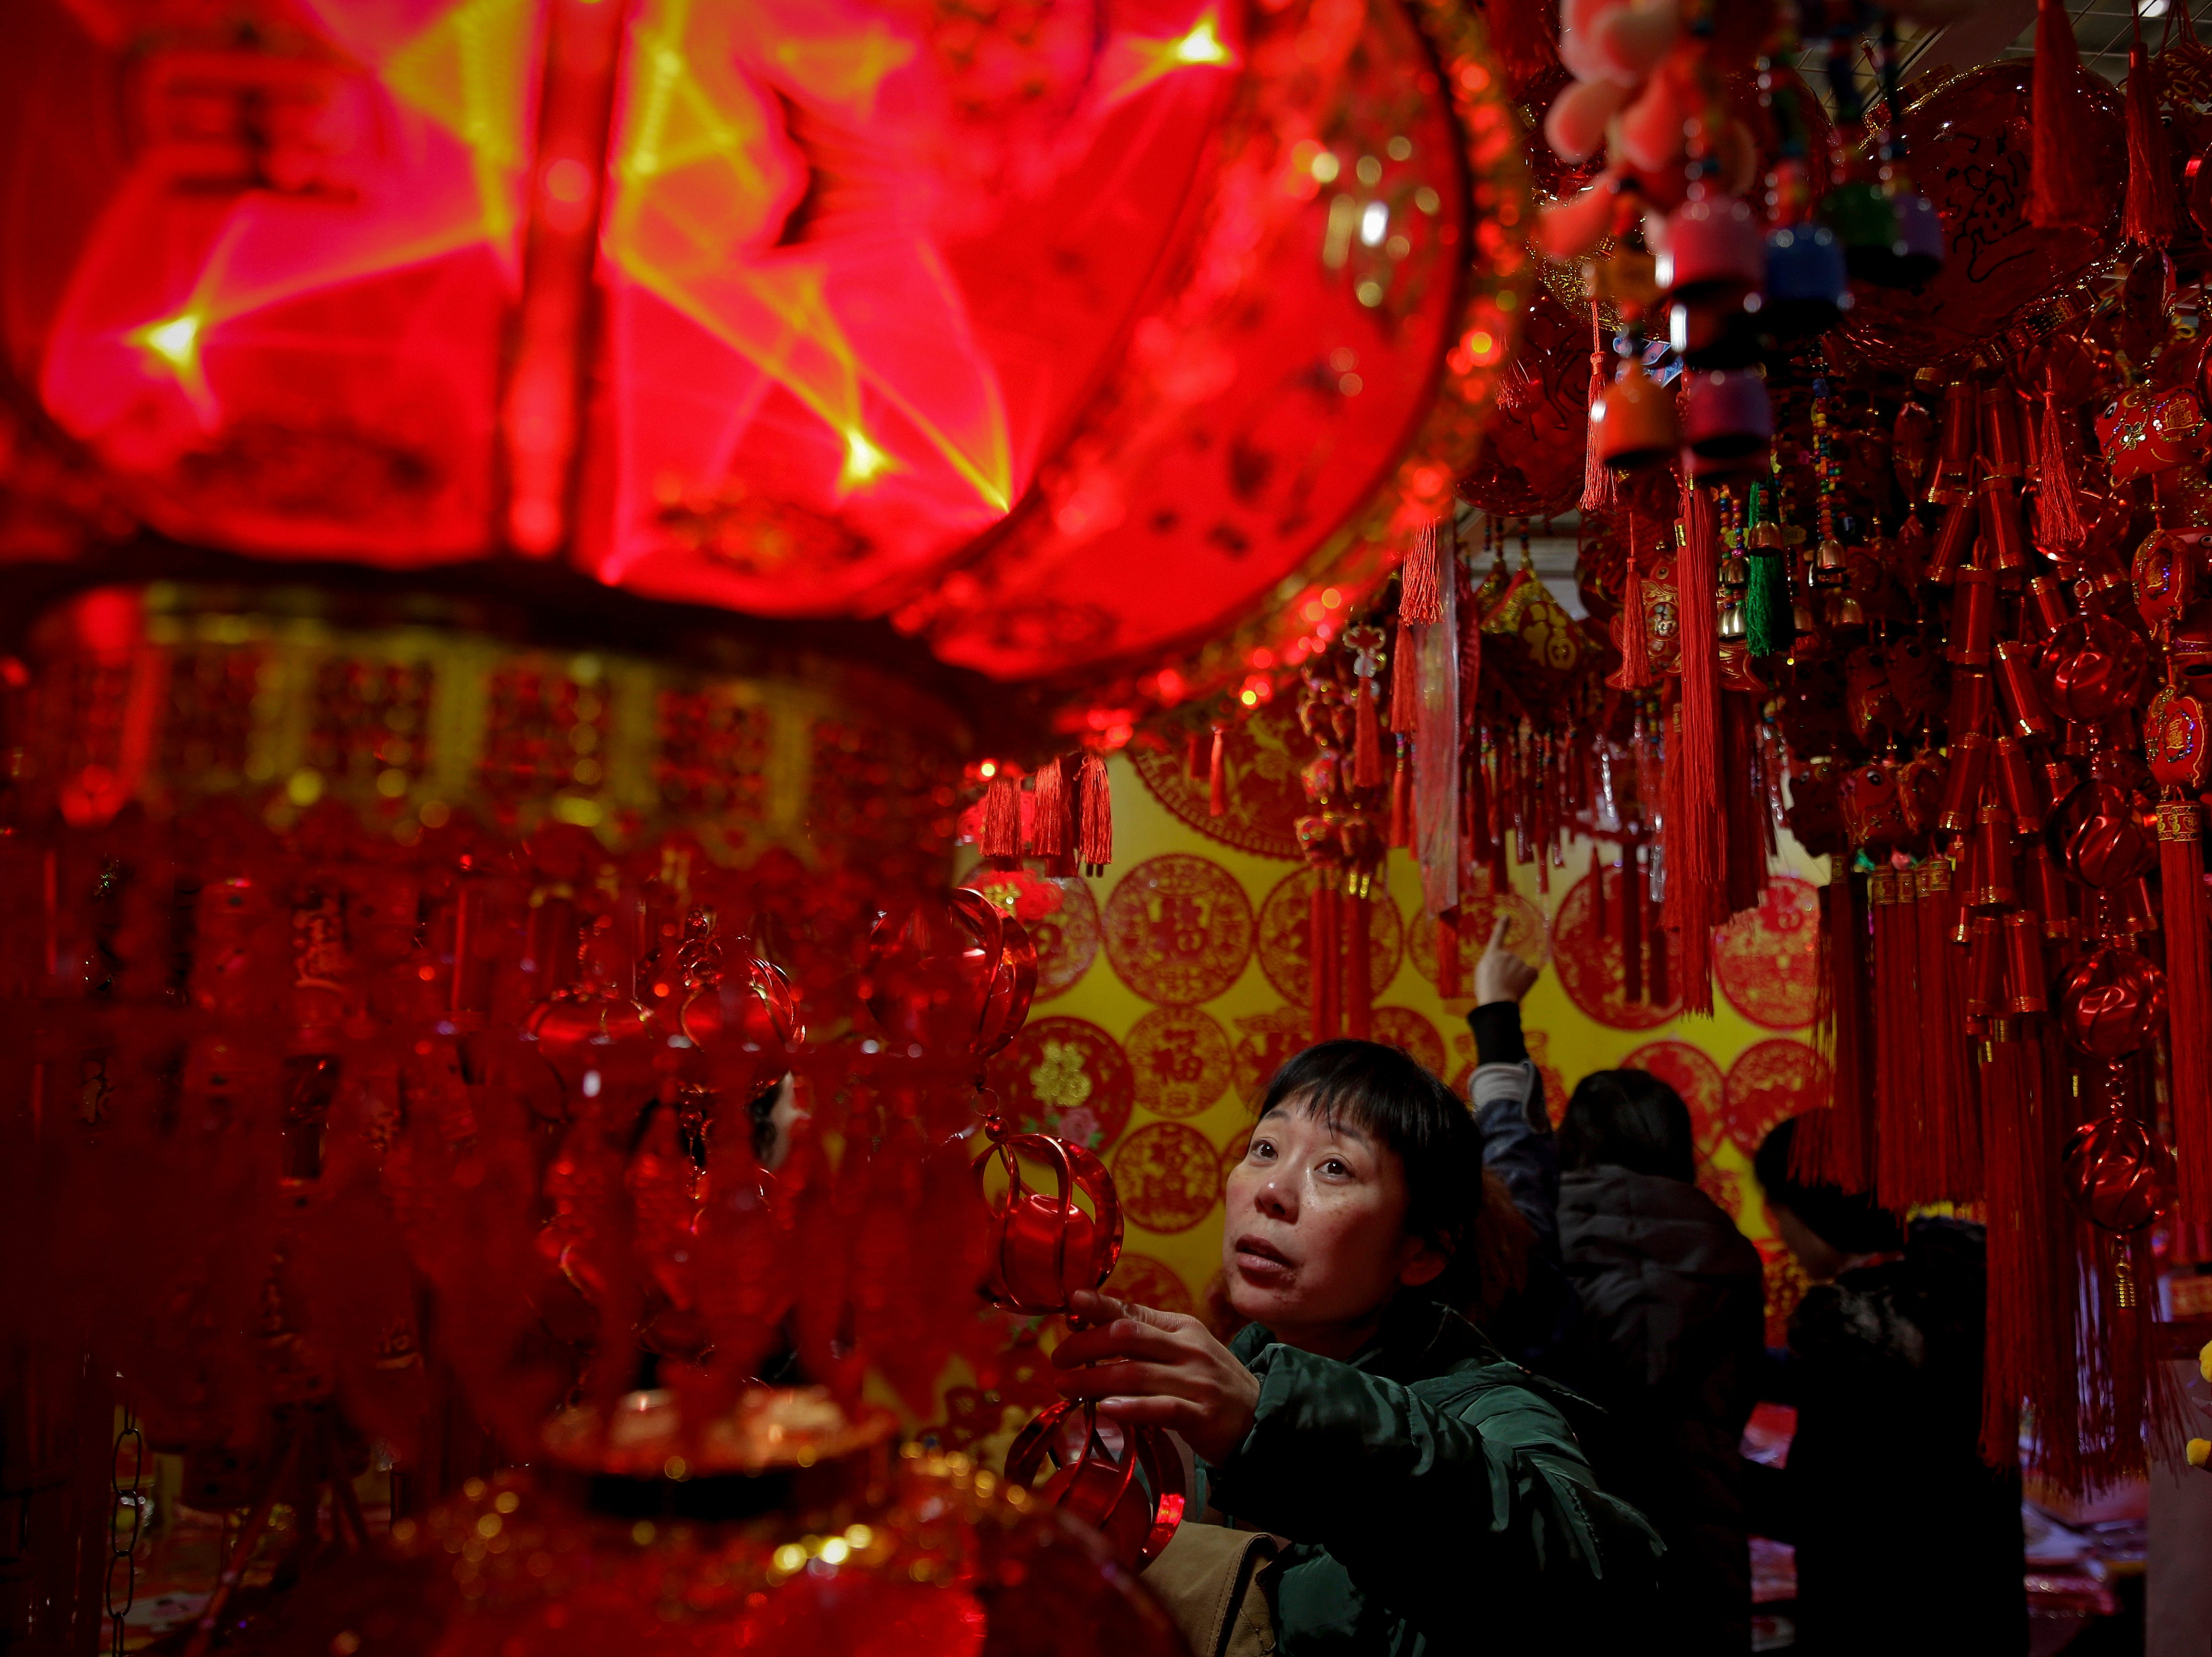 A woman selects Lunar New Year decorations on sale at a market in Beijing, Tuesday, Jan. 29, 2019. China will celebrate Lunar New Year on Feb. 5, which marks the Year of the Pig on the Chinese zodiac.